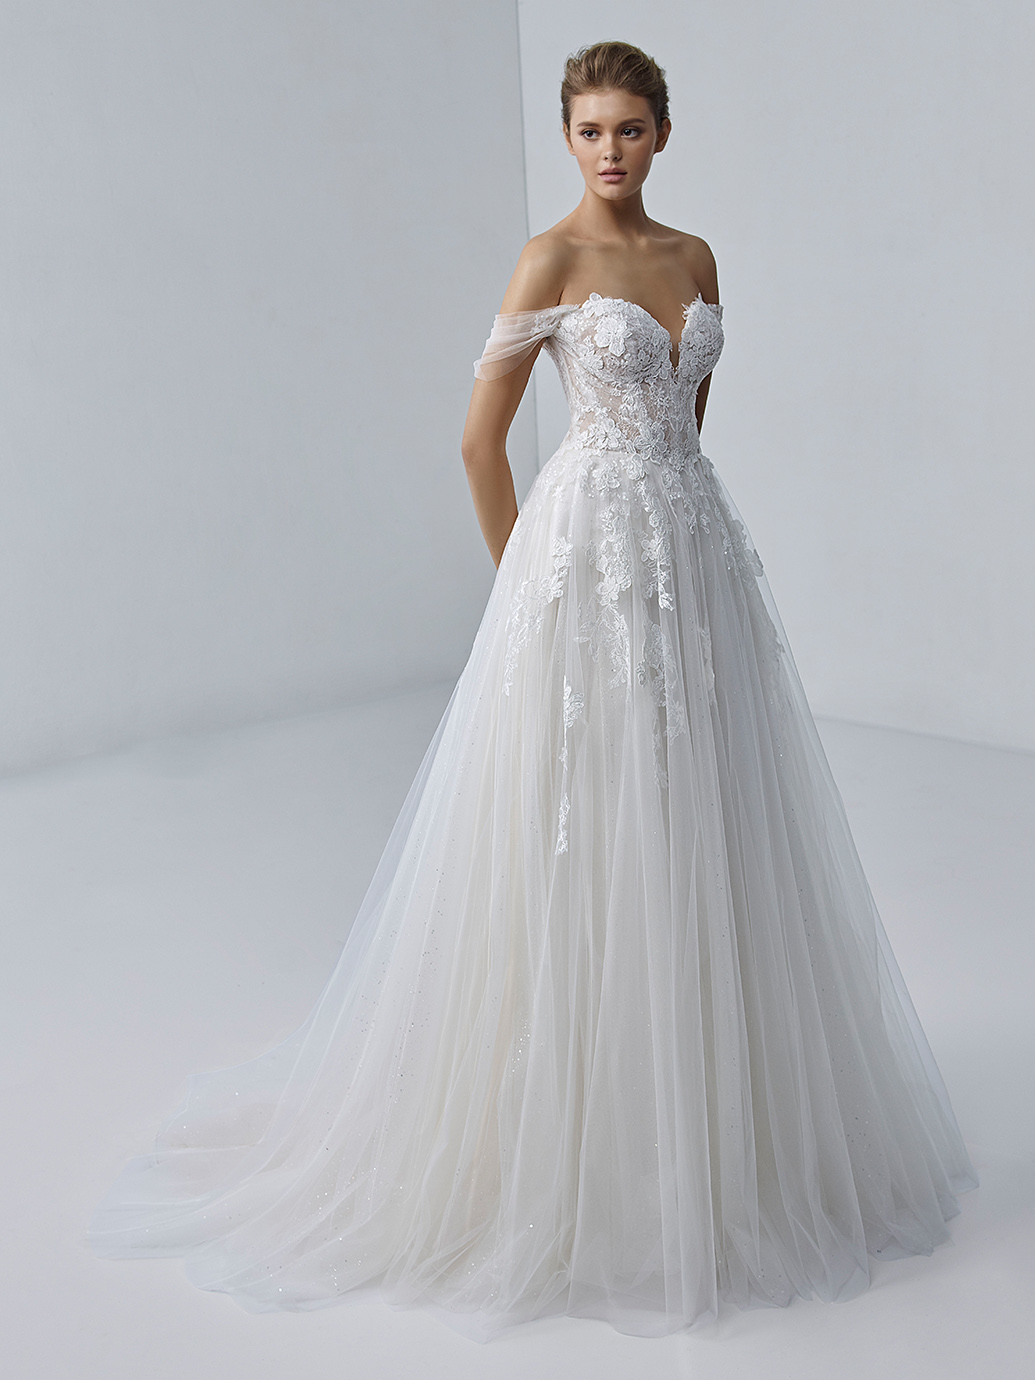 étoile-by-enzoani-2021-Dress-Finder-Aurora